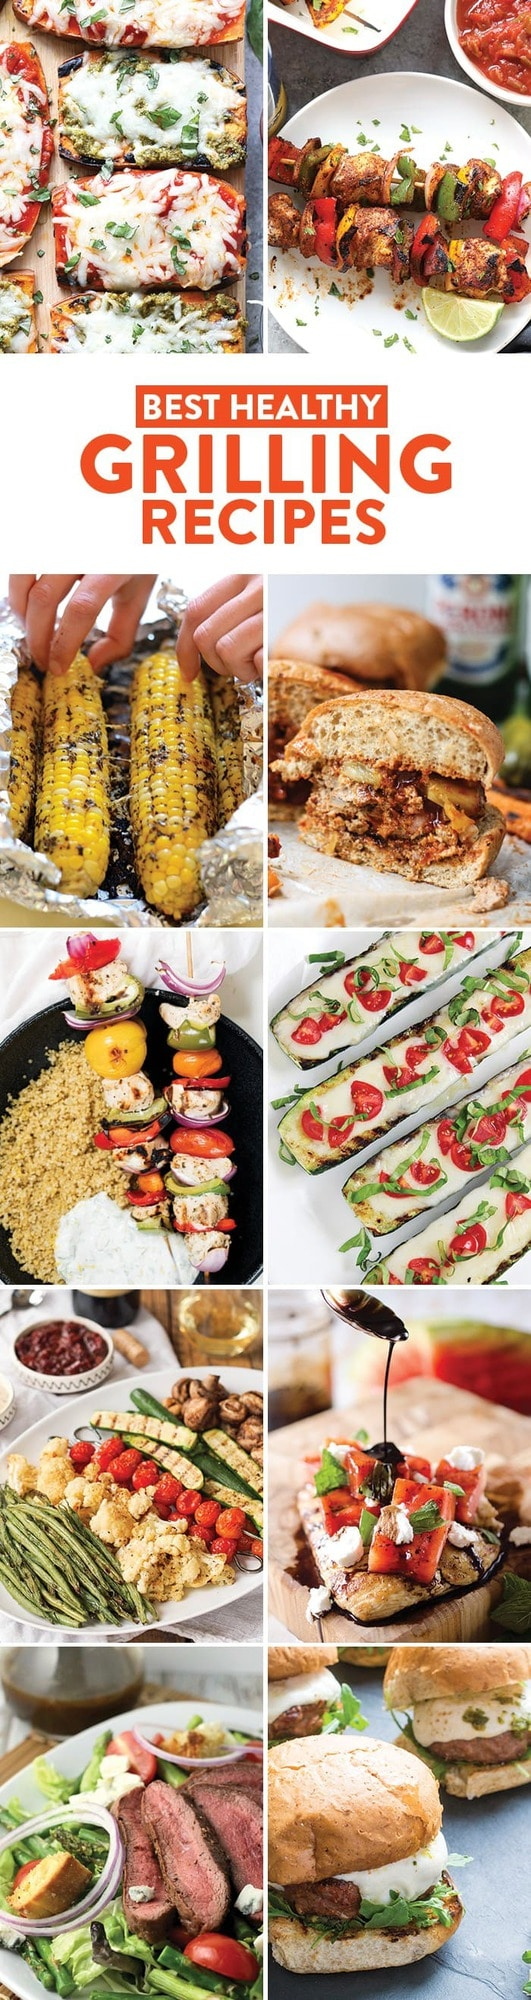 Easy on the Grill Recipes that are Healthy and Delicious! Add any of these easy on the grill recipes to your menu this summer and you won't regret it! There is nothing like spending time outside cooking healthy food on the bbq.